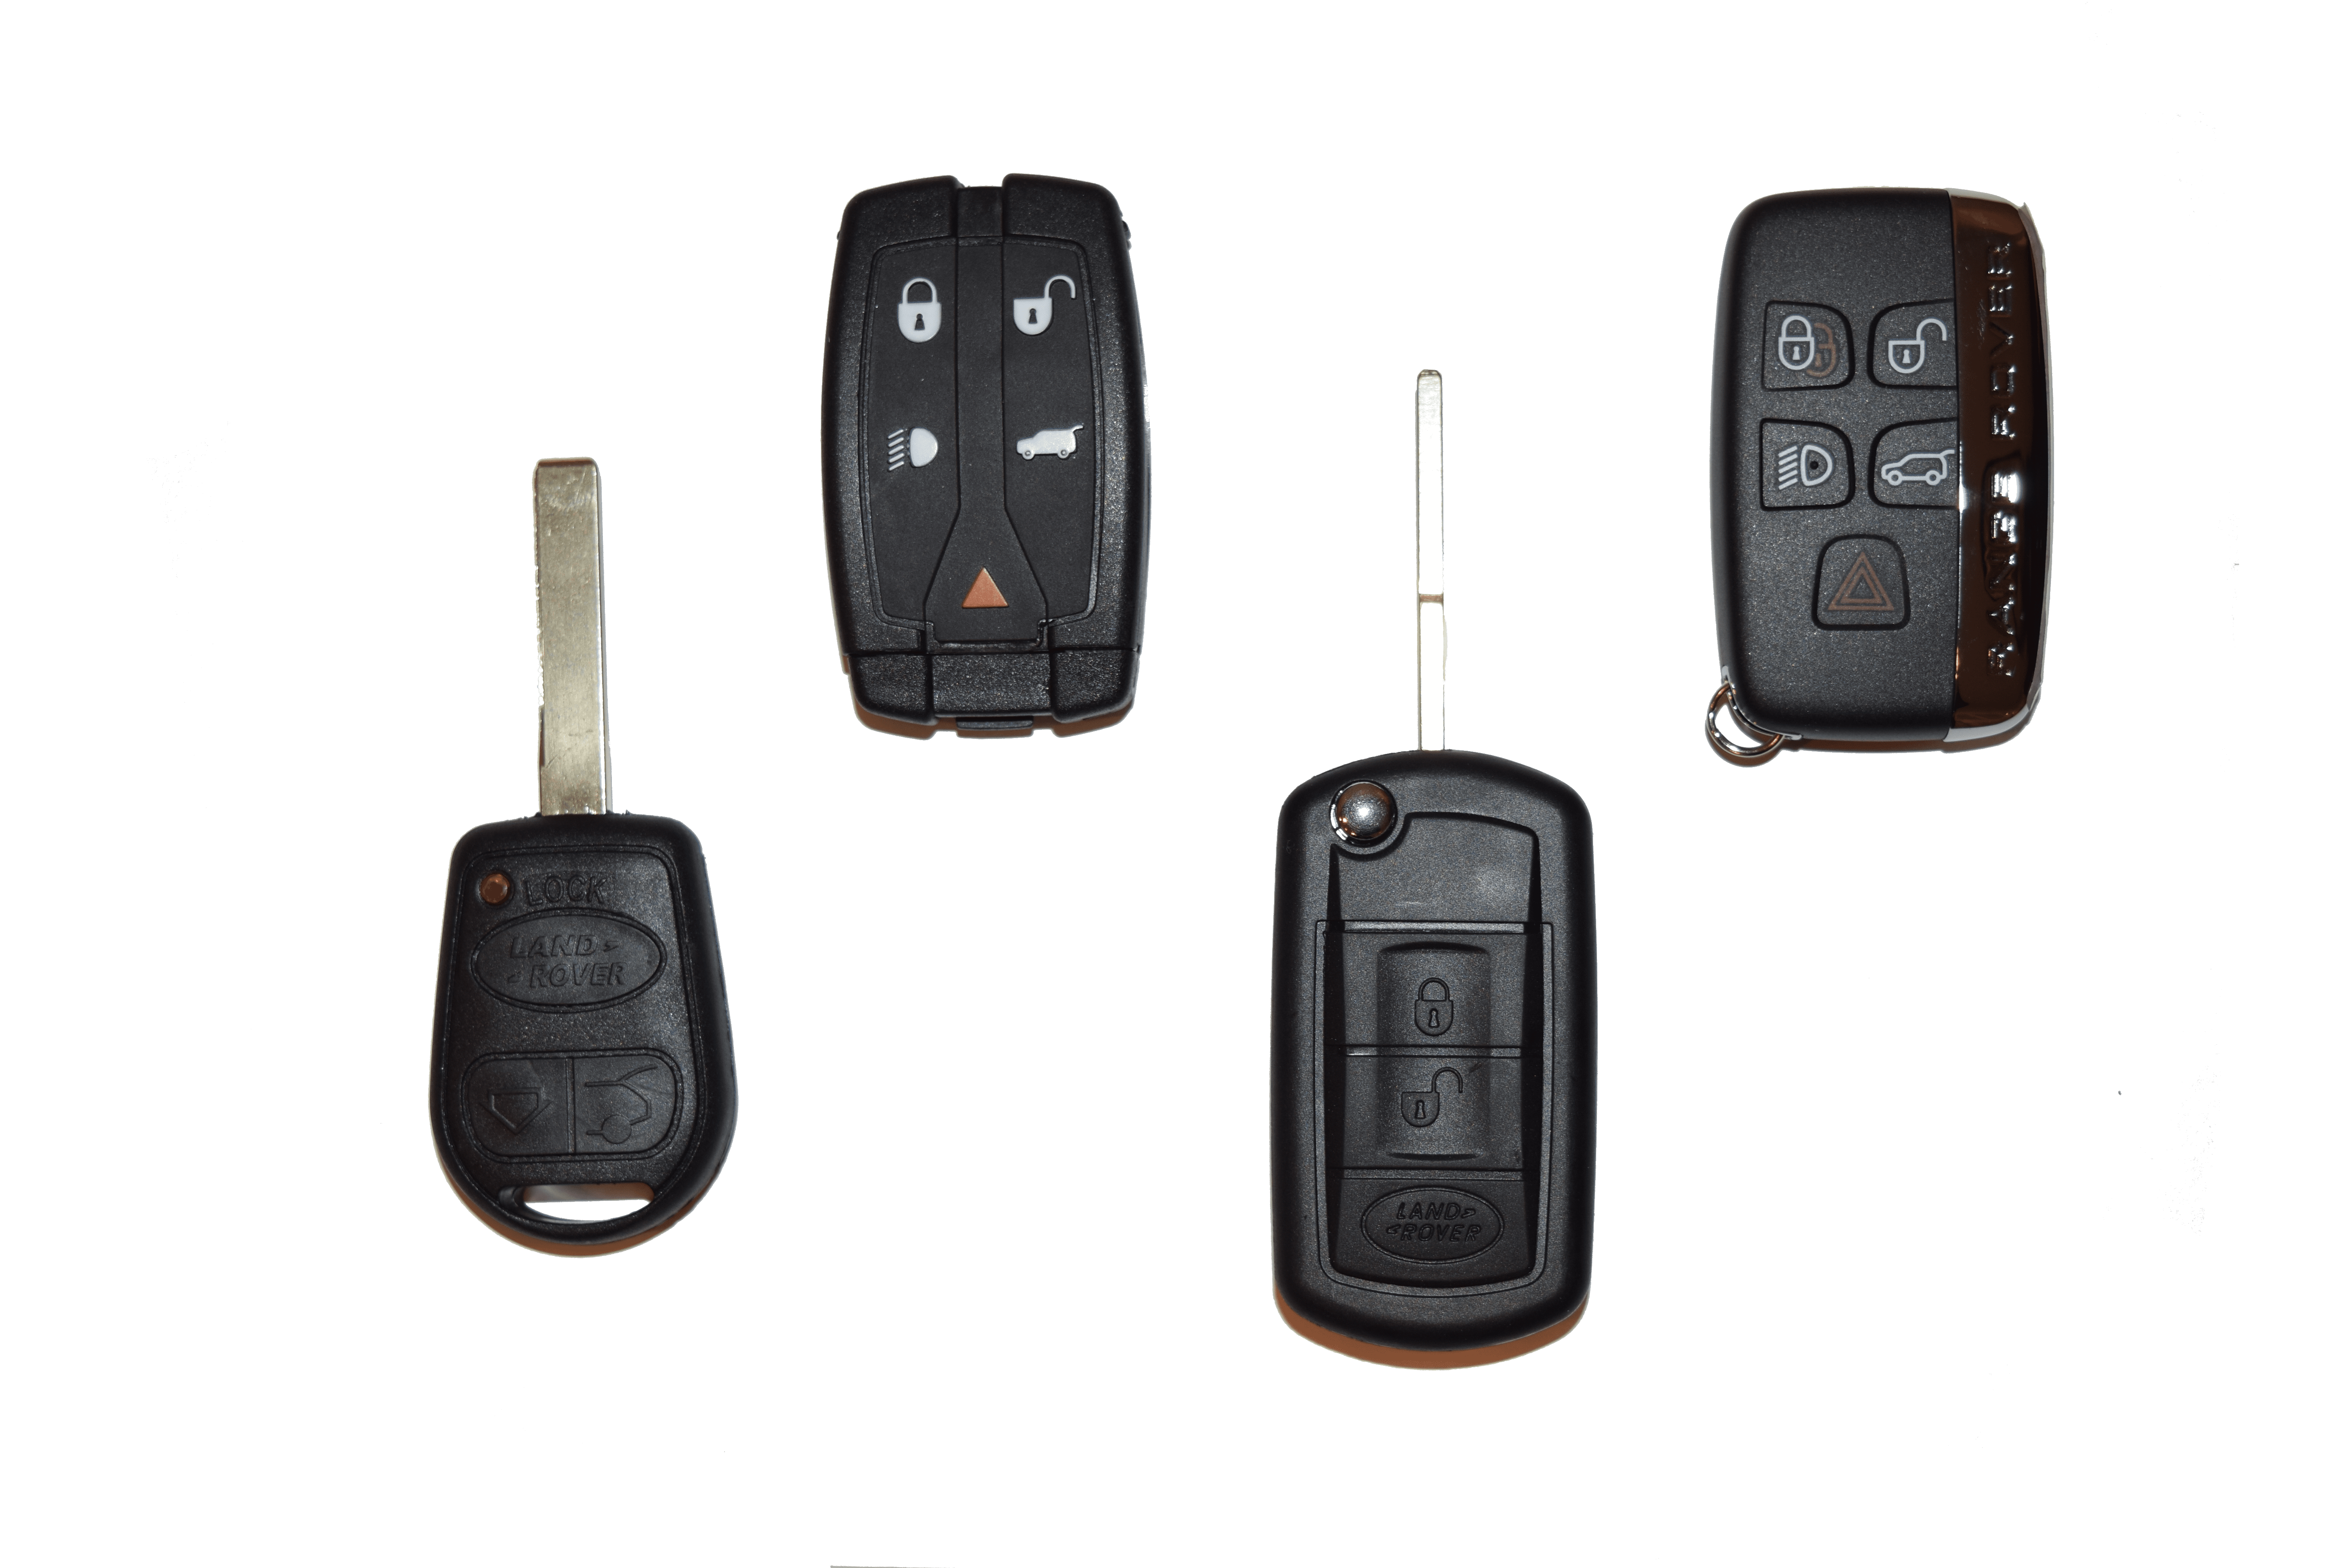 APEX Locksmith, Apex Denver Locksmith, Denver Locksmith, Land Rover Car Key Replacement, Lost Land Rover Car Keys